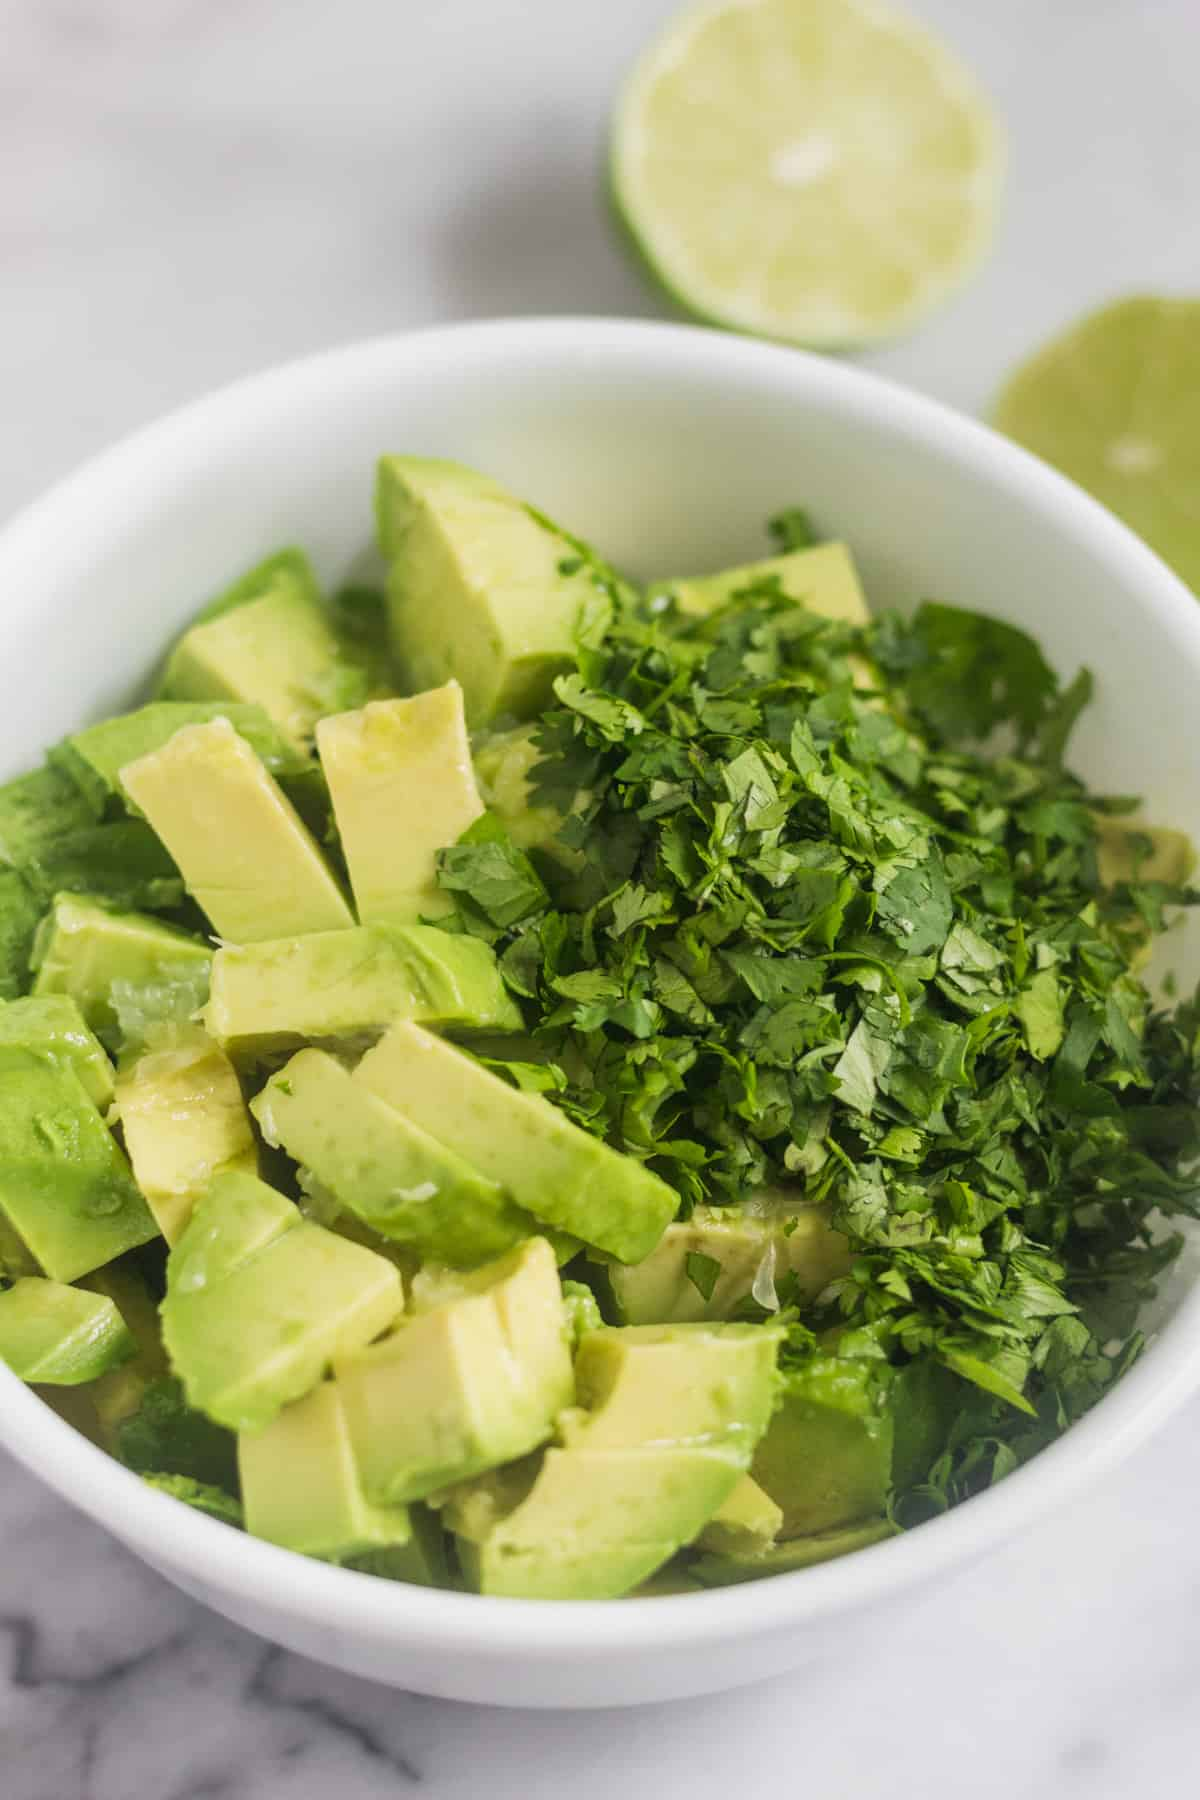 White bowl filled with diced avocado, lime juice, and chopped cilantro